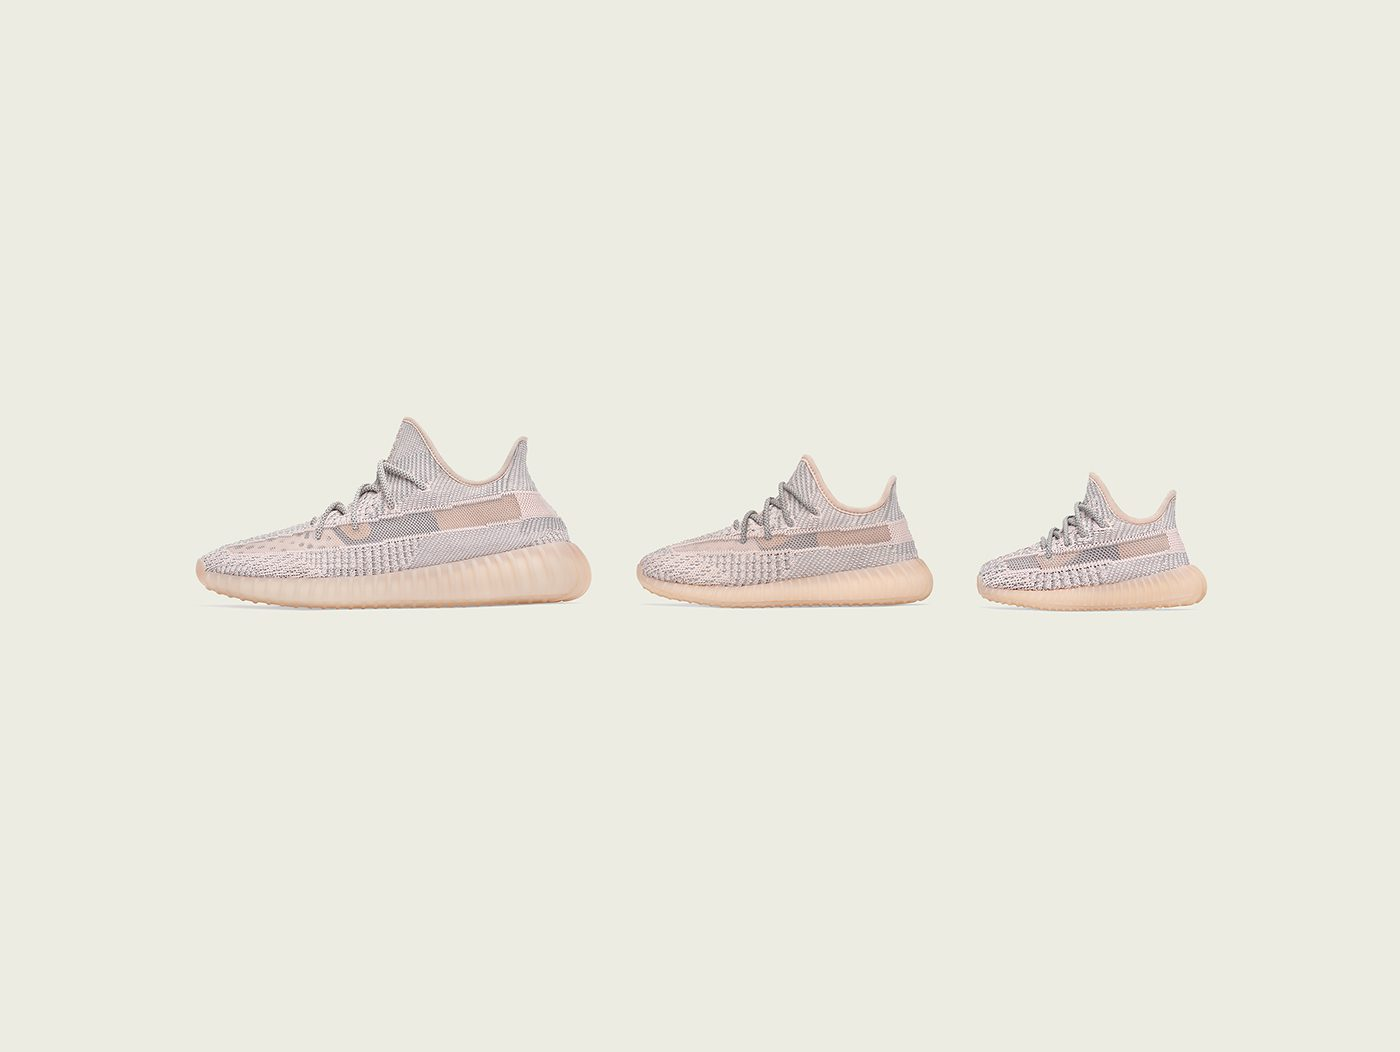 YEEZY BOOST 350 V2 SYNTH RF , YEEZY BOOST 350 V2 SYNTH